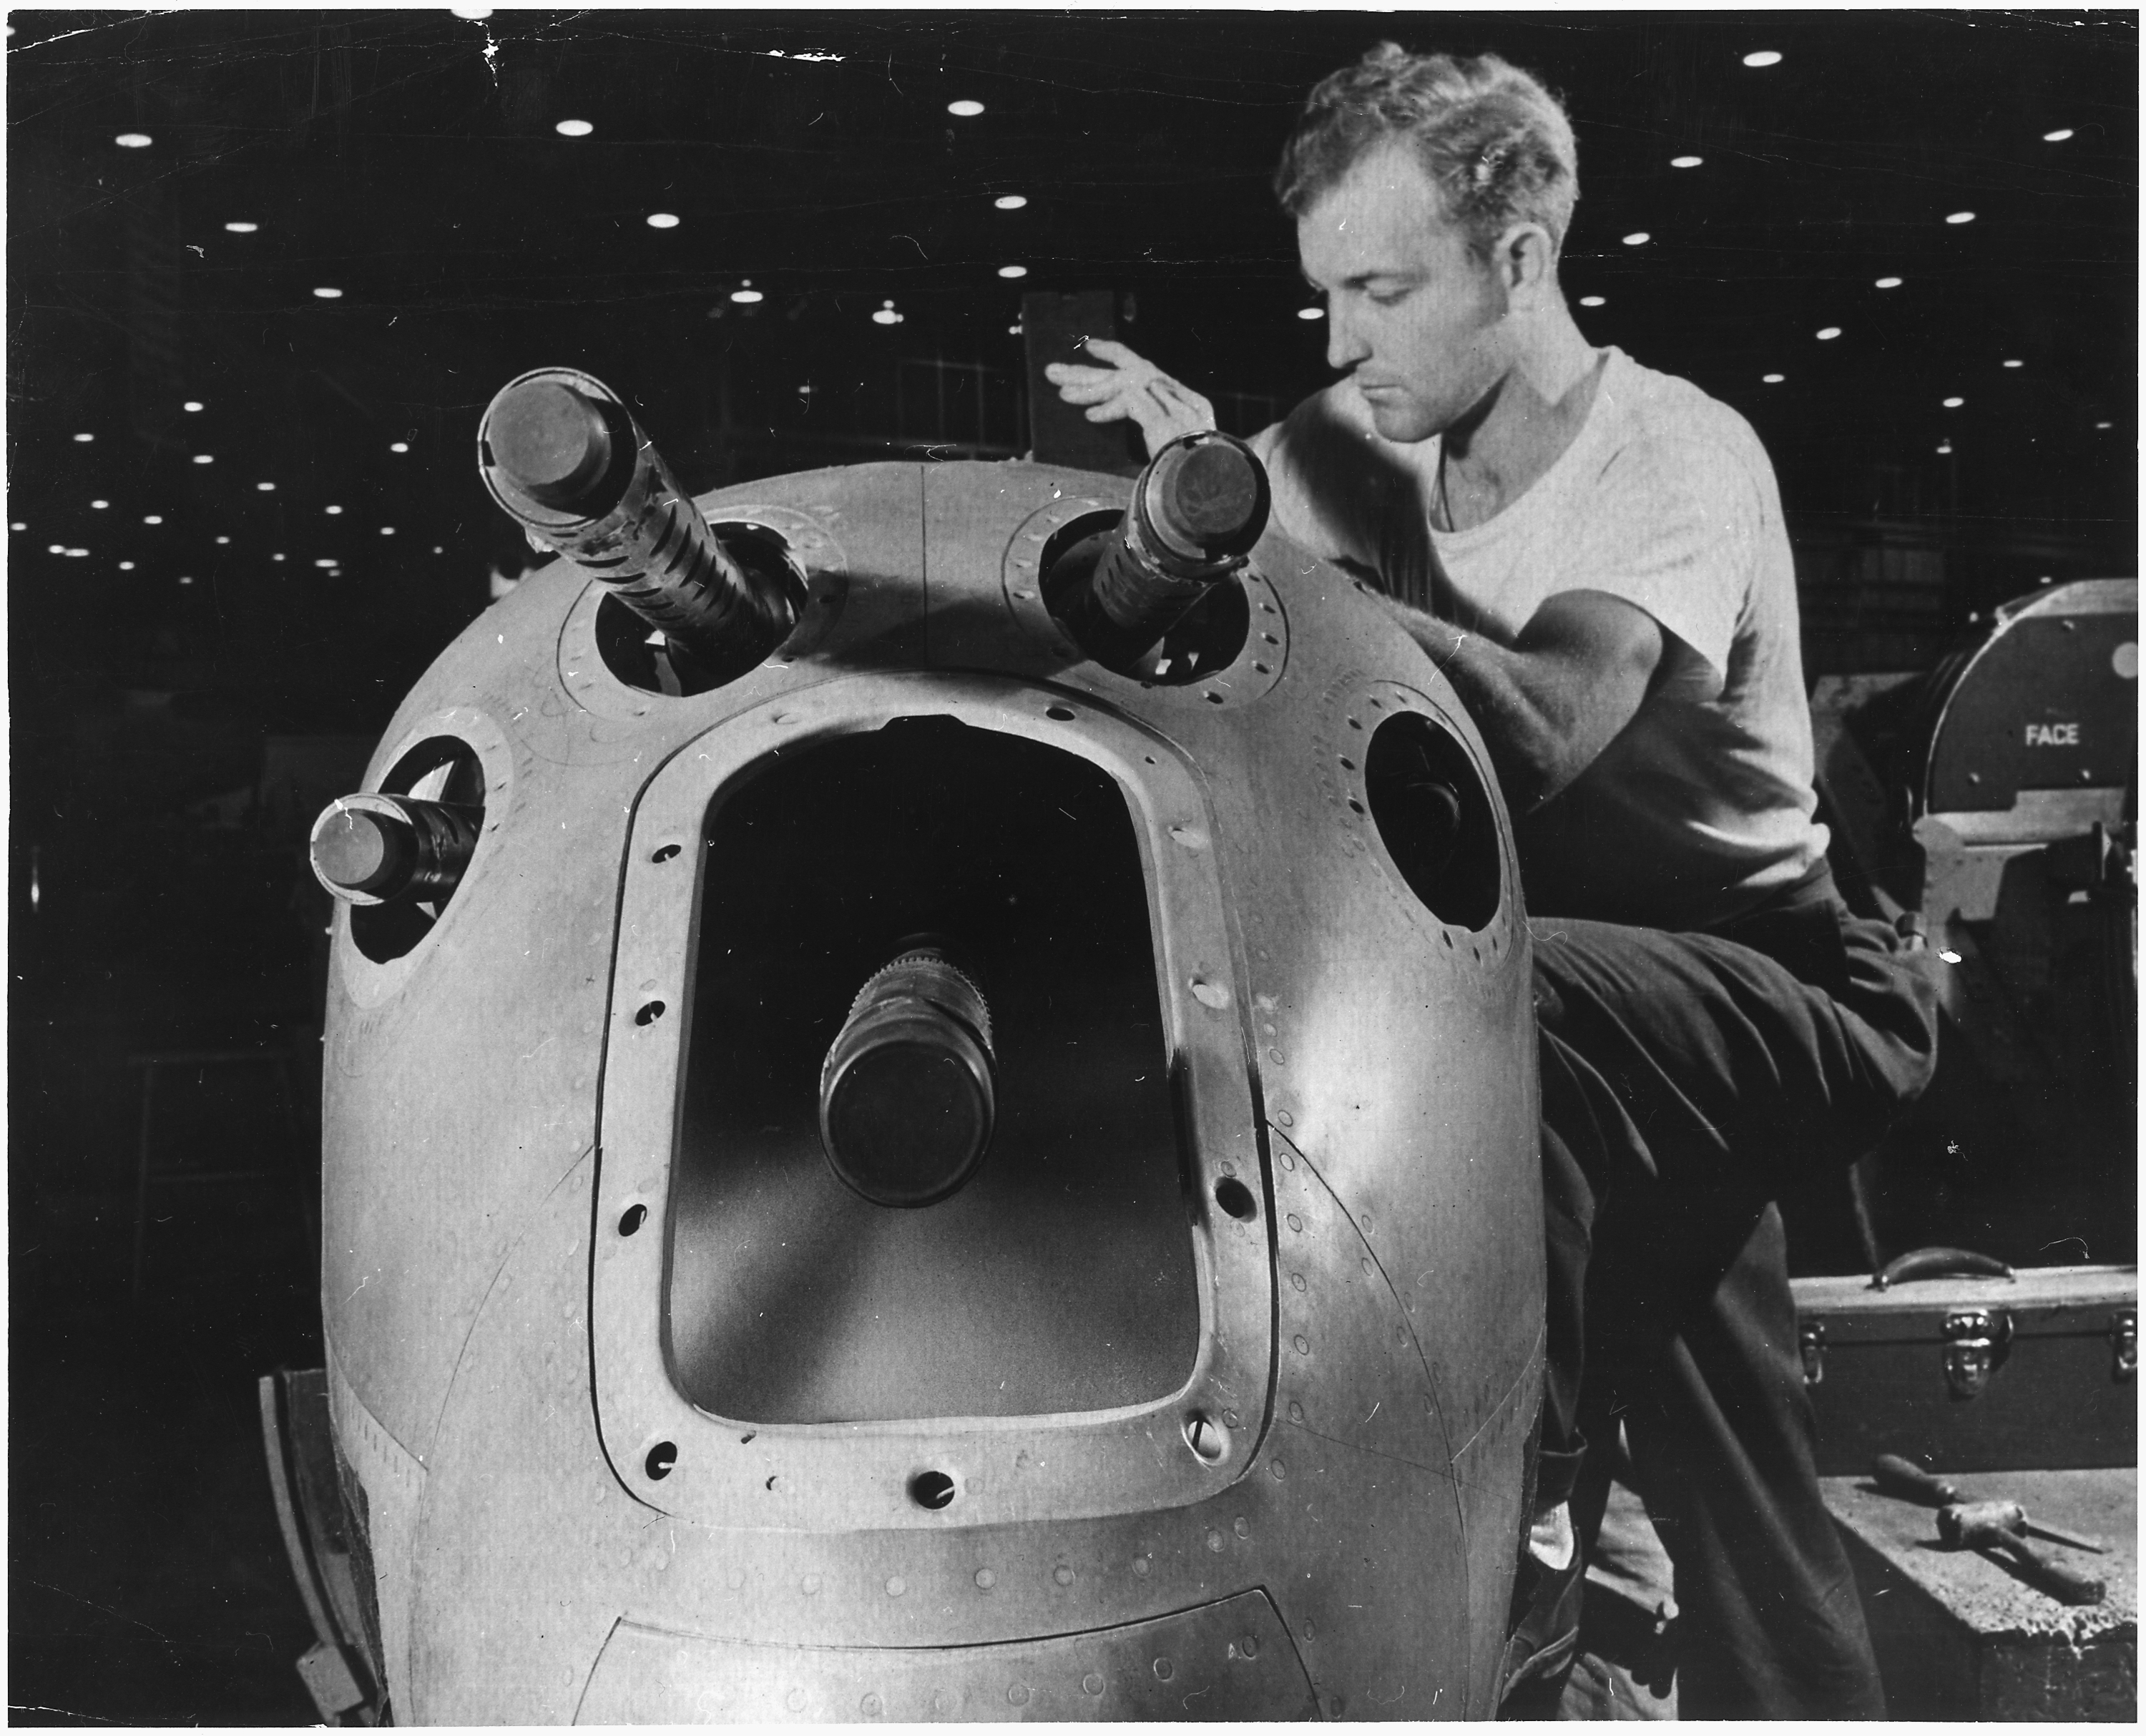 https://upload.wikimedia.org/wikipedia/commons/4/41/An_armorer%27s_assistant_in_a_large_western_aircraft_plant_works_on_the_installation_of_one_of_the_machine_guns_in_the..._-_NARA_-_196367.jpg